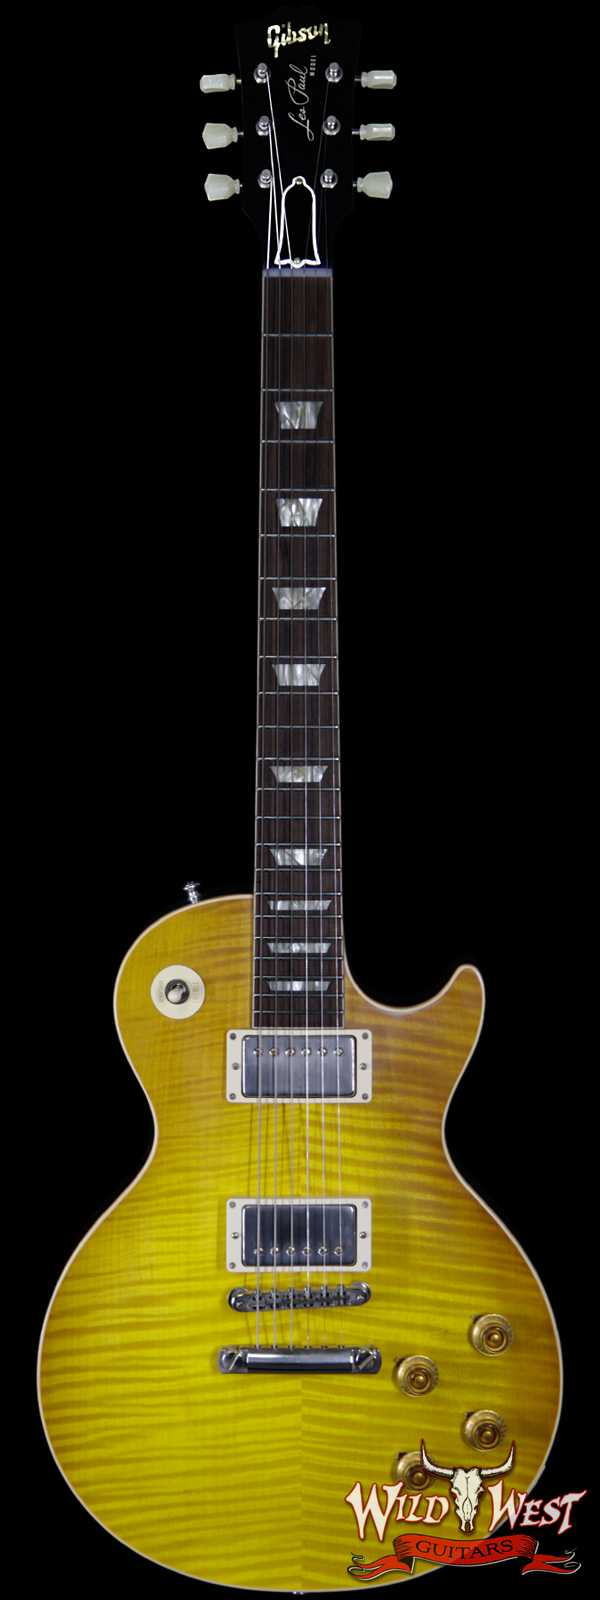 Gibson Custom Shop M2M Hand Selected Kill Top 60th Anniversary 1959 Les Paul Standard VOS Honey Lemon Fade 8.80 lbs